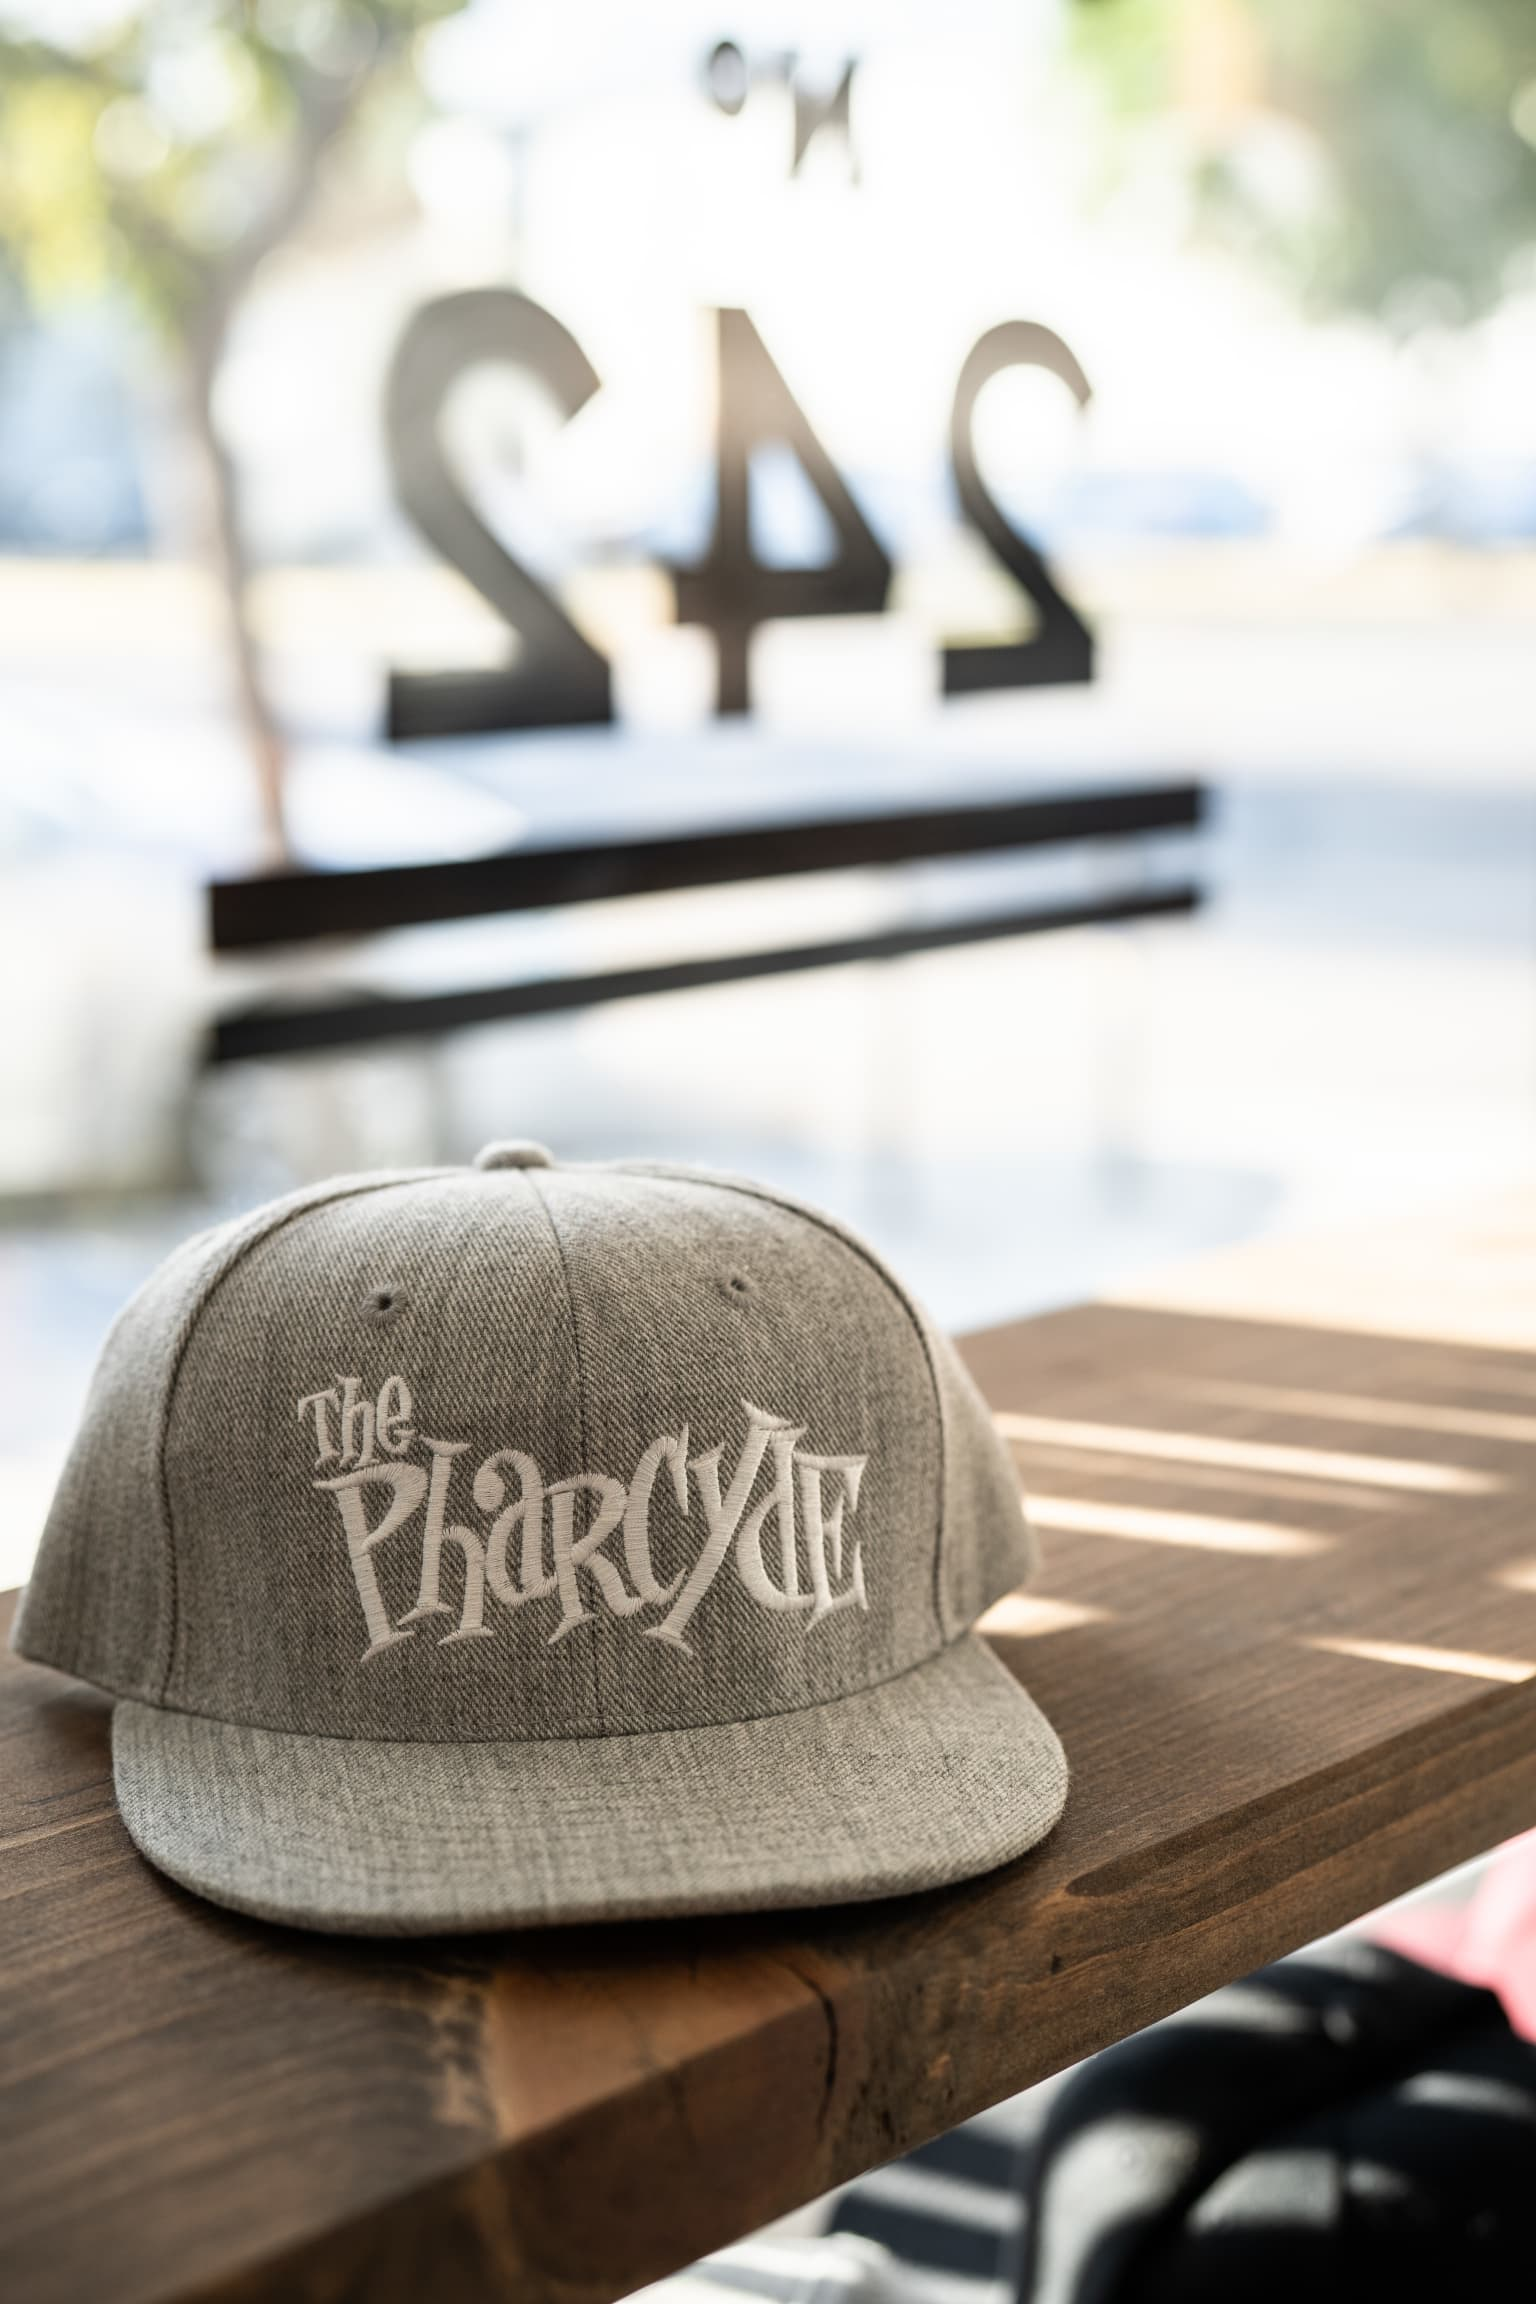 Lifestyle/E-commerce for The Pharcyde